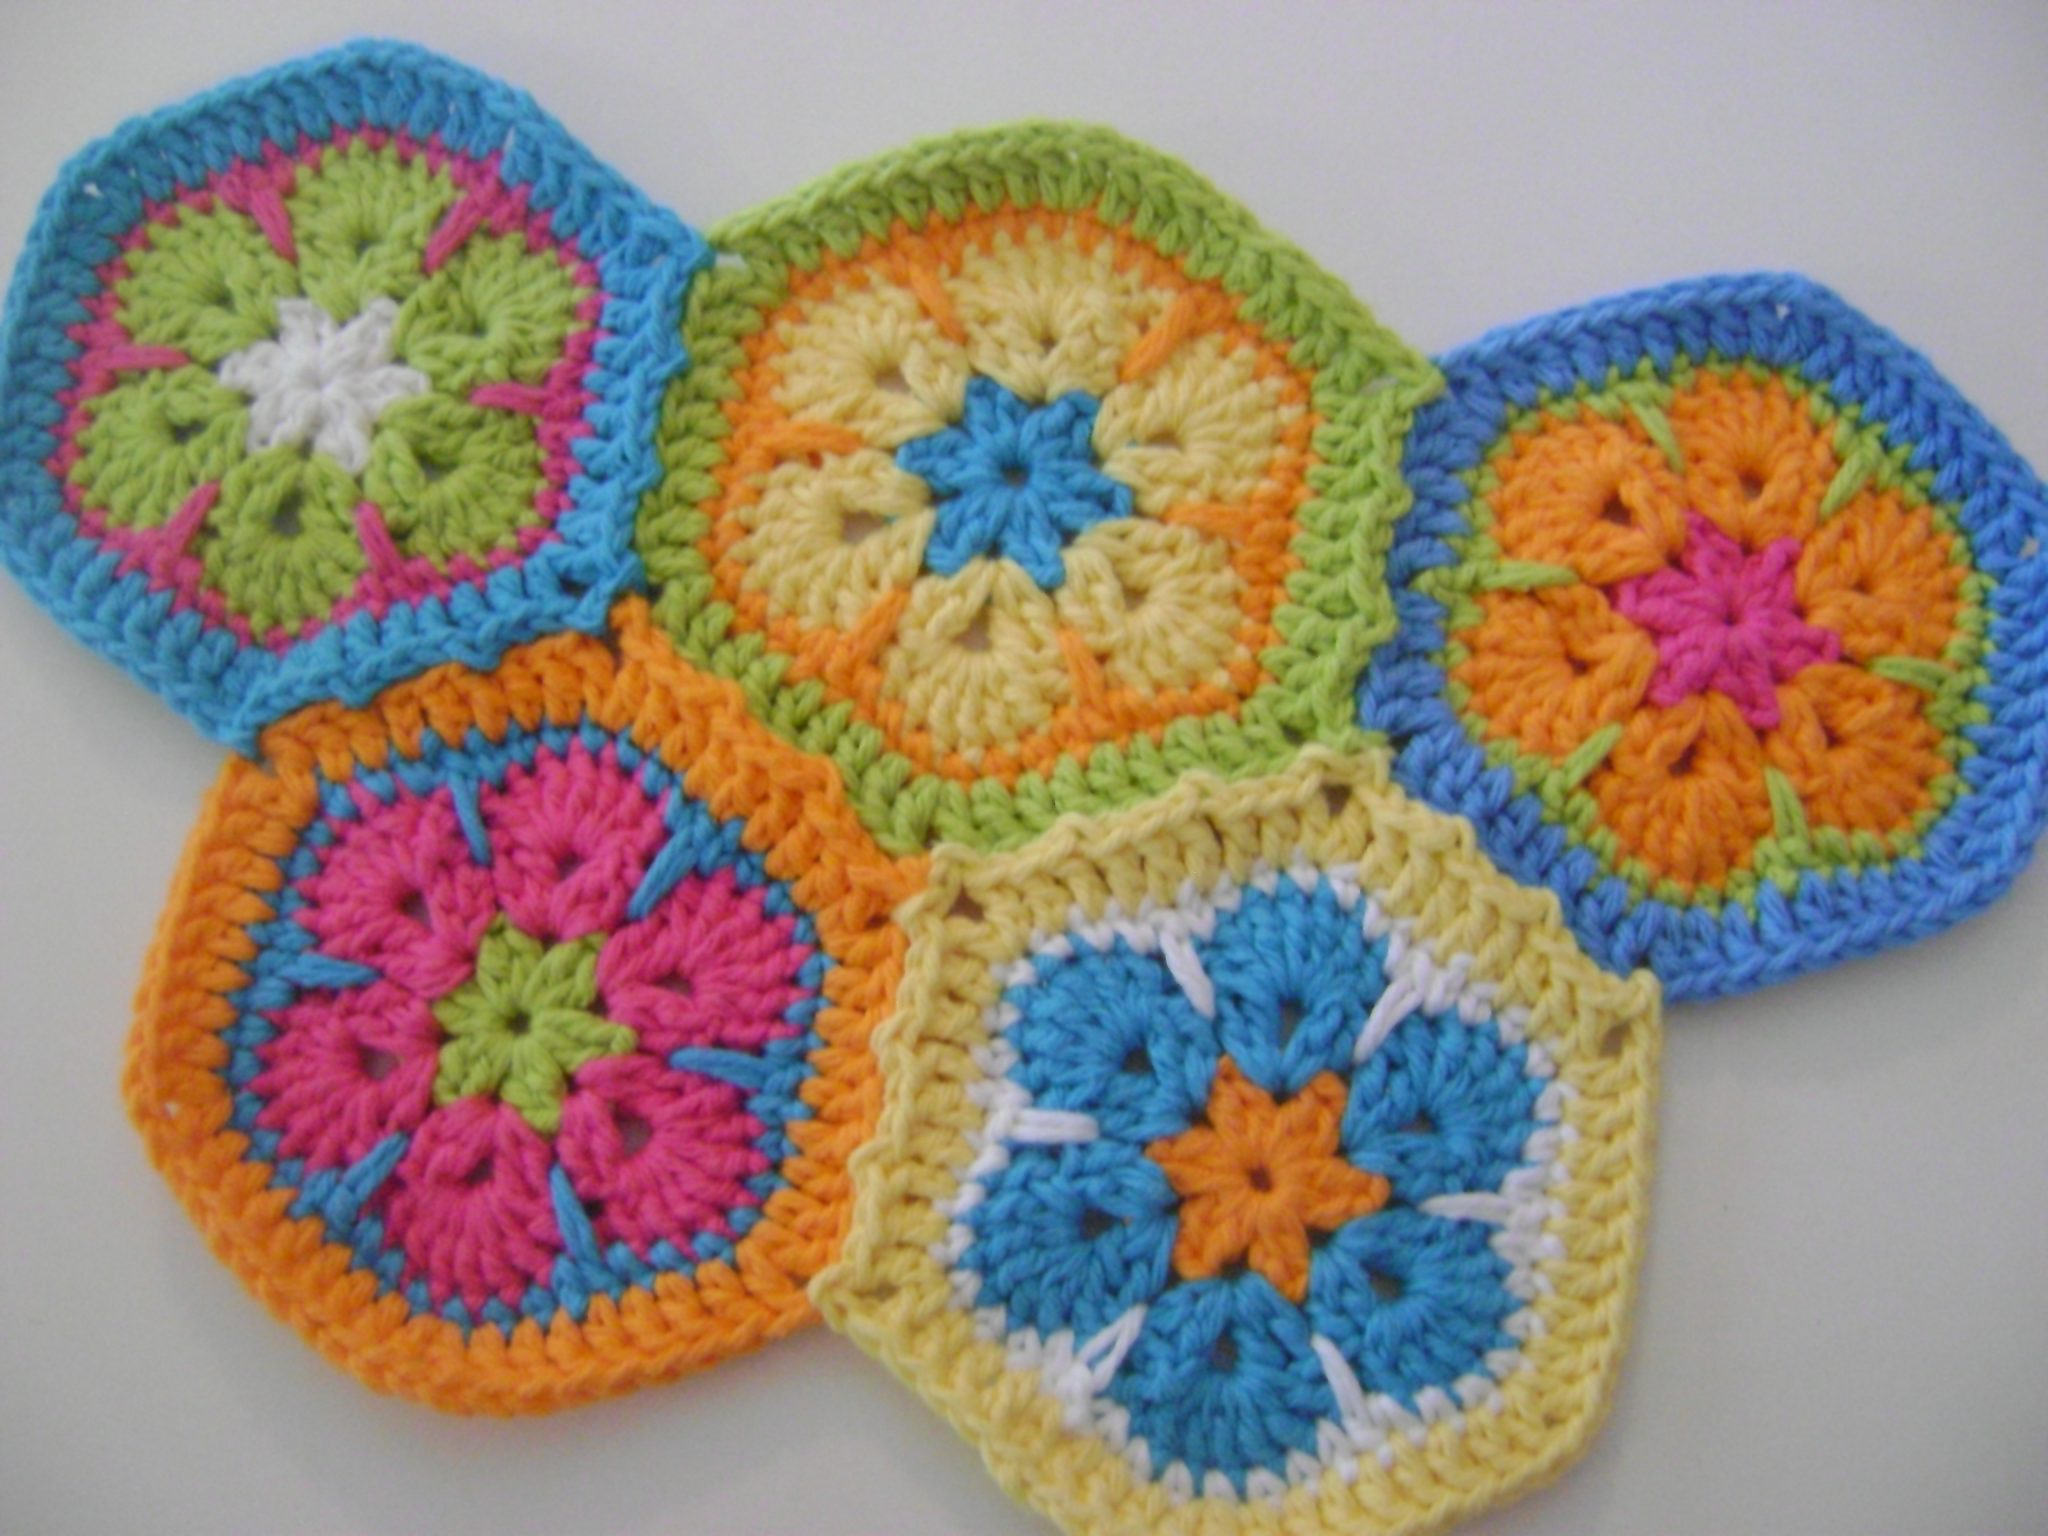 Free Knitted Crochet African Flower Pattern Dragon : Hexagons On Point in 10 Free Patterns